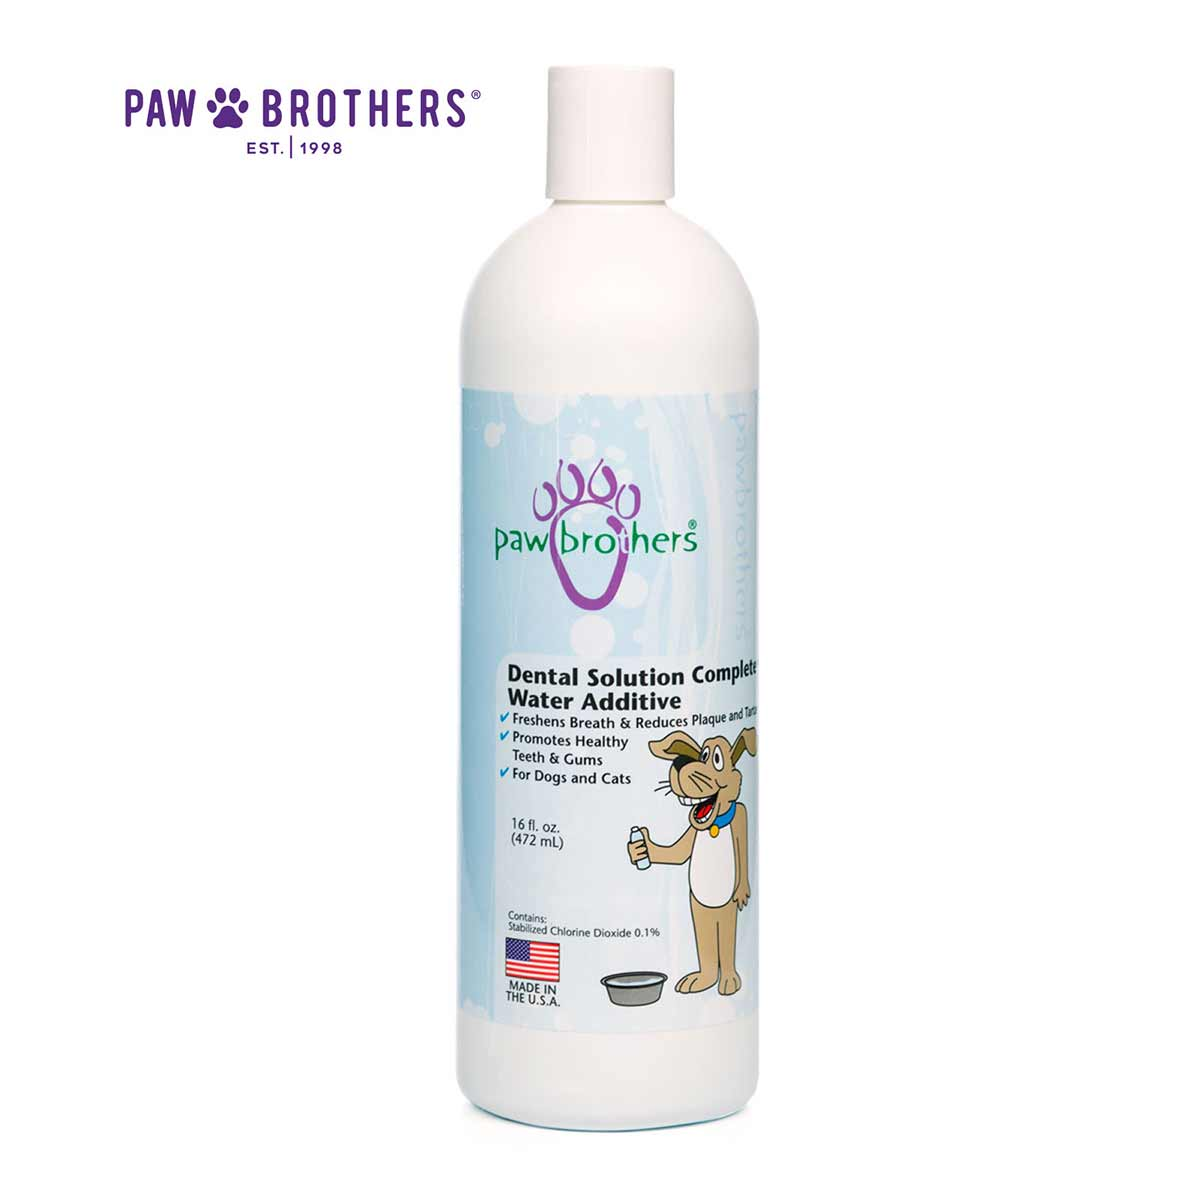 Paw Brothers Dental Solution Complete Water Additive for Dogs 16 oz